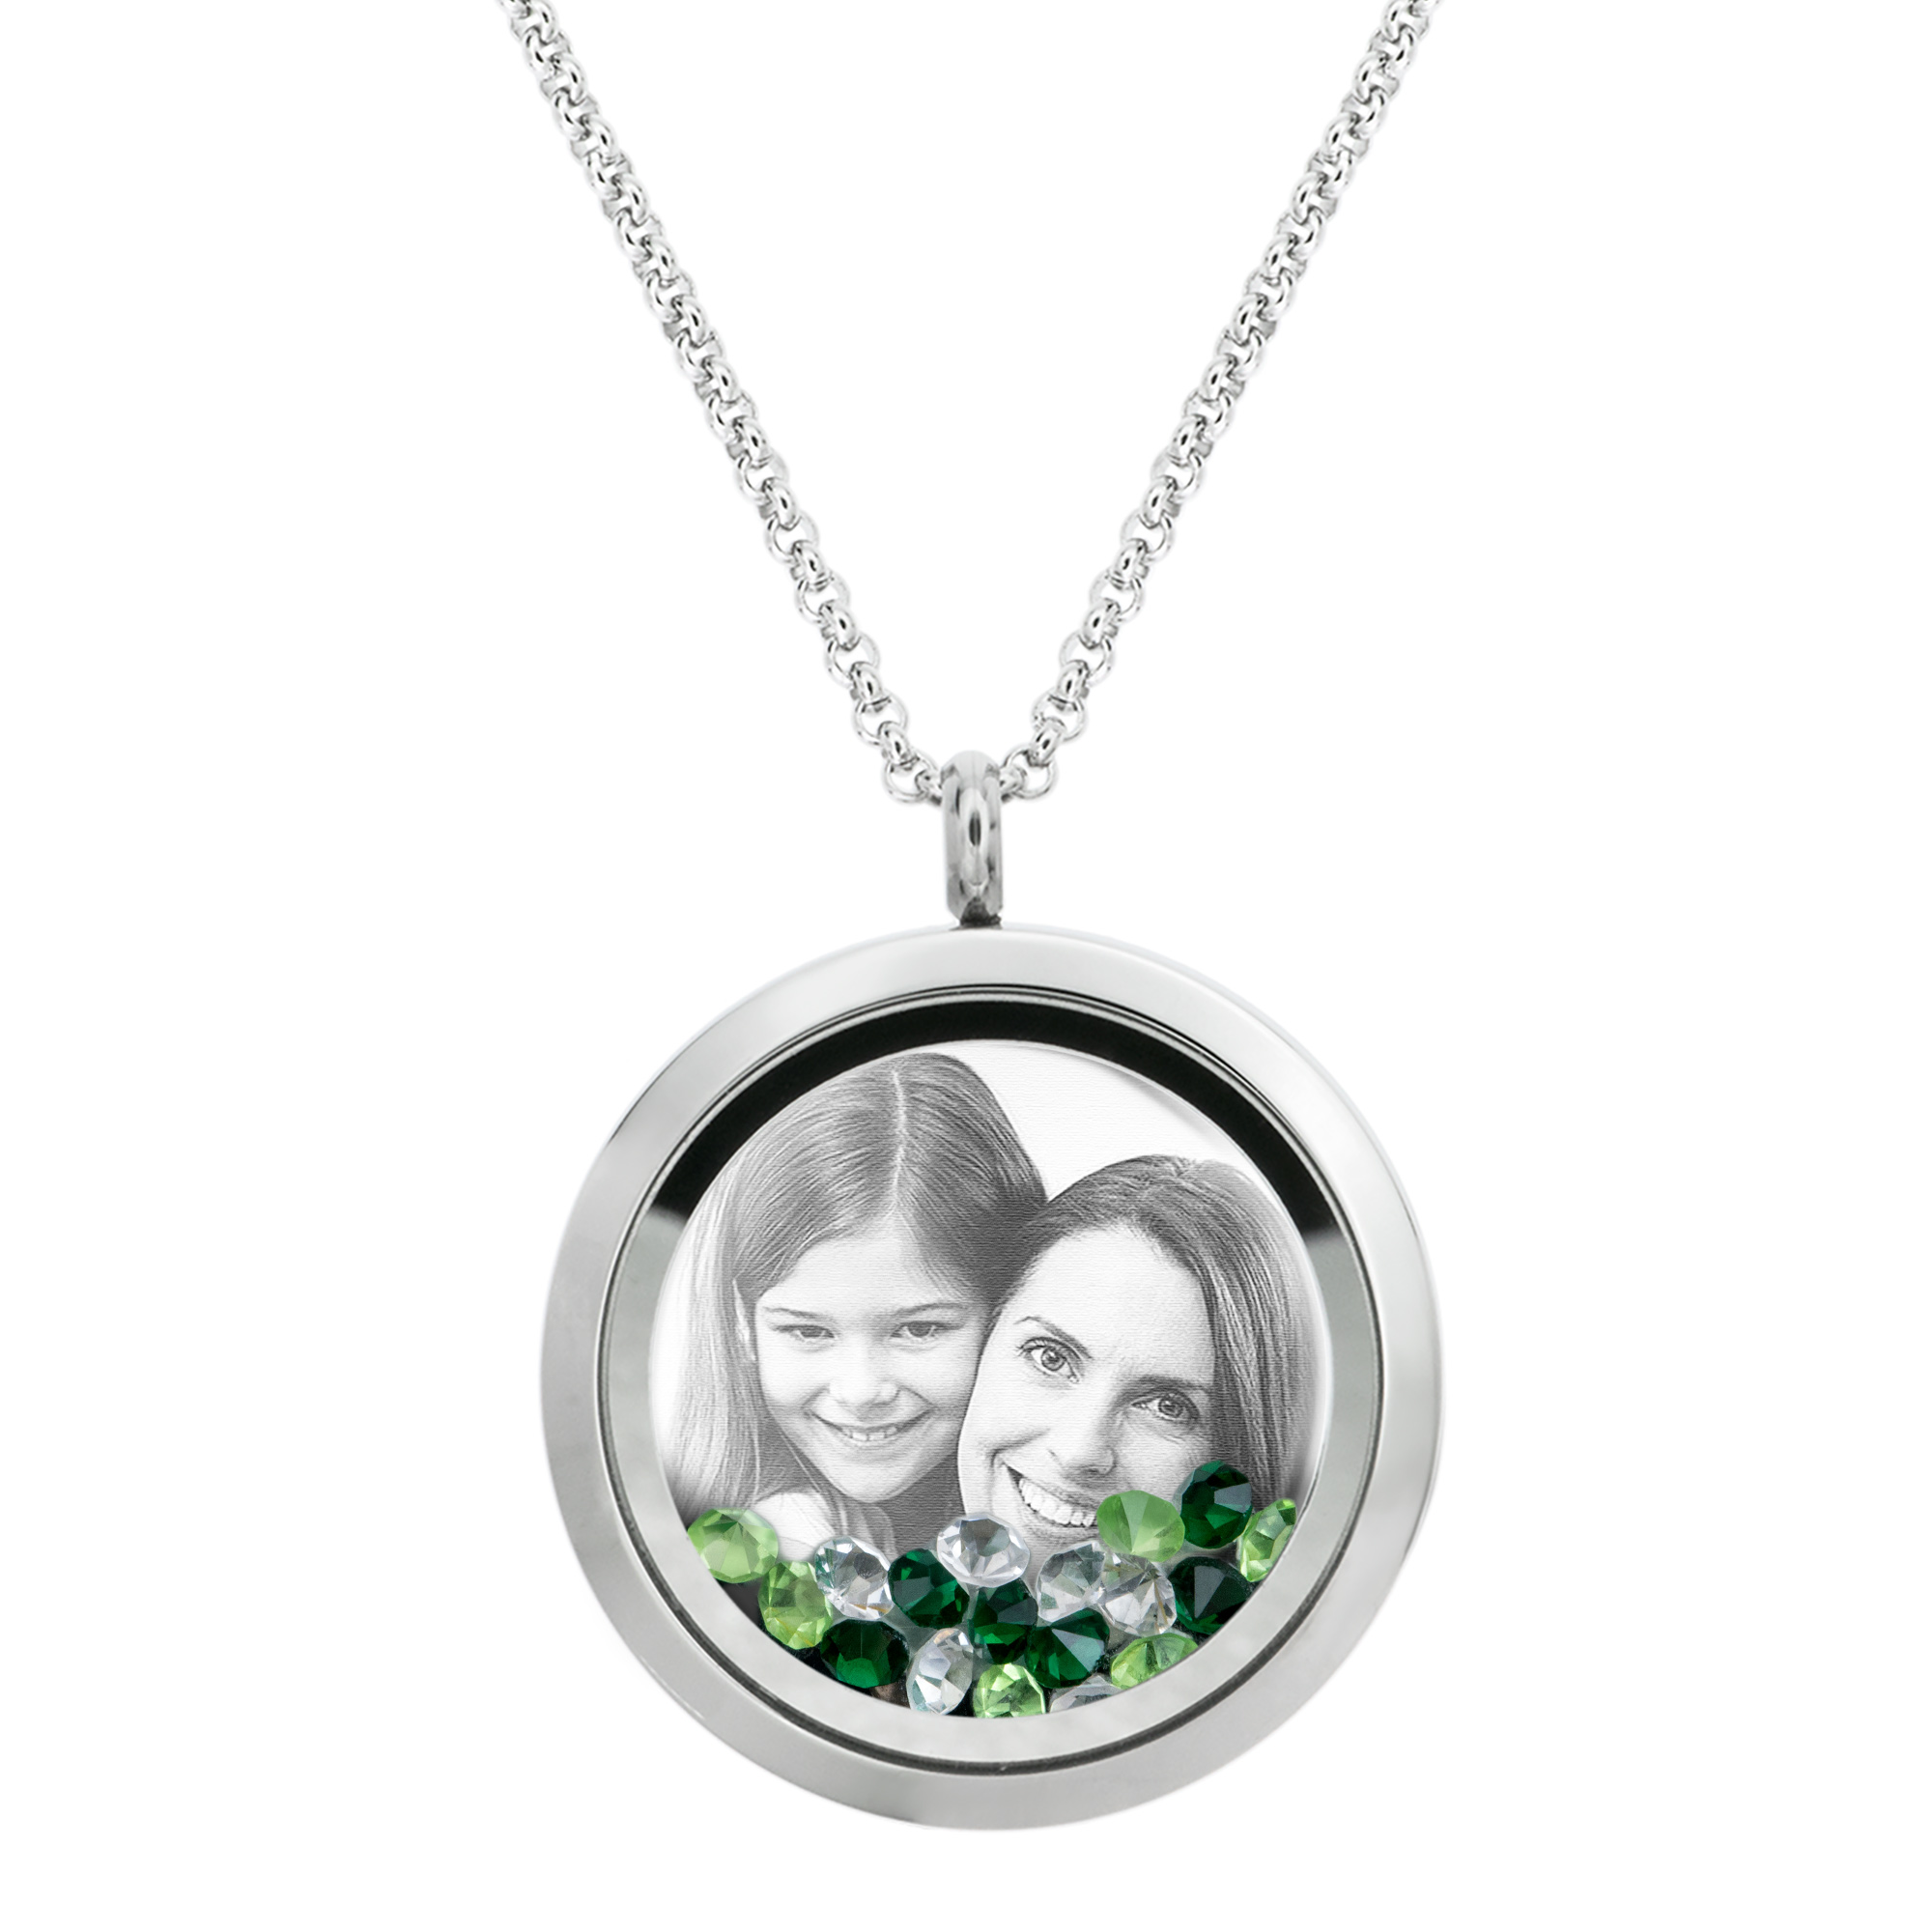 1x Stainless Steel Personalize Photo Message Engrave Round Floating Crystal Chain Necklace Pendant to My Best Mom Mother 30mm Green